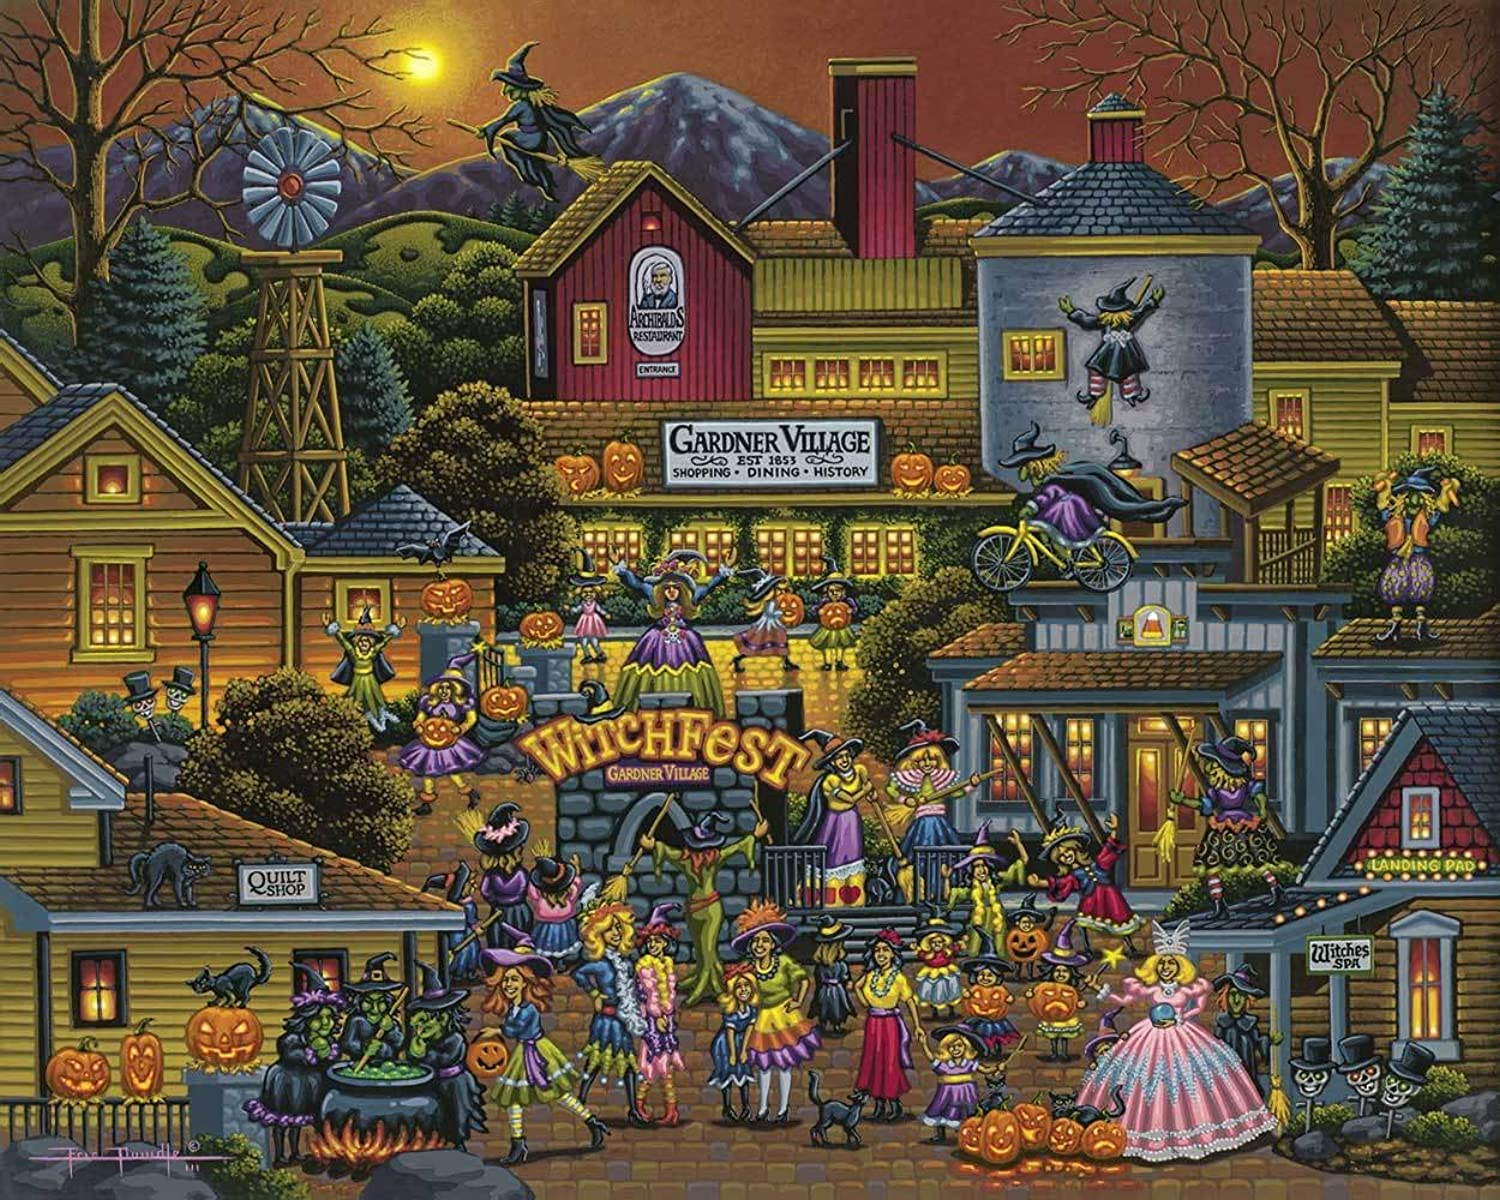 Jigsaw Puzzle - Gardner Village Witchfest 100 Pc By Dowdle Folk Art by Dowdle Folk Art